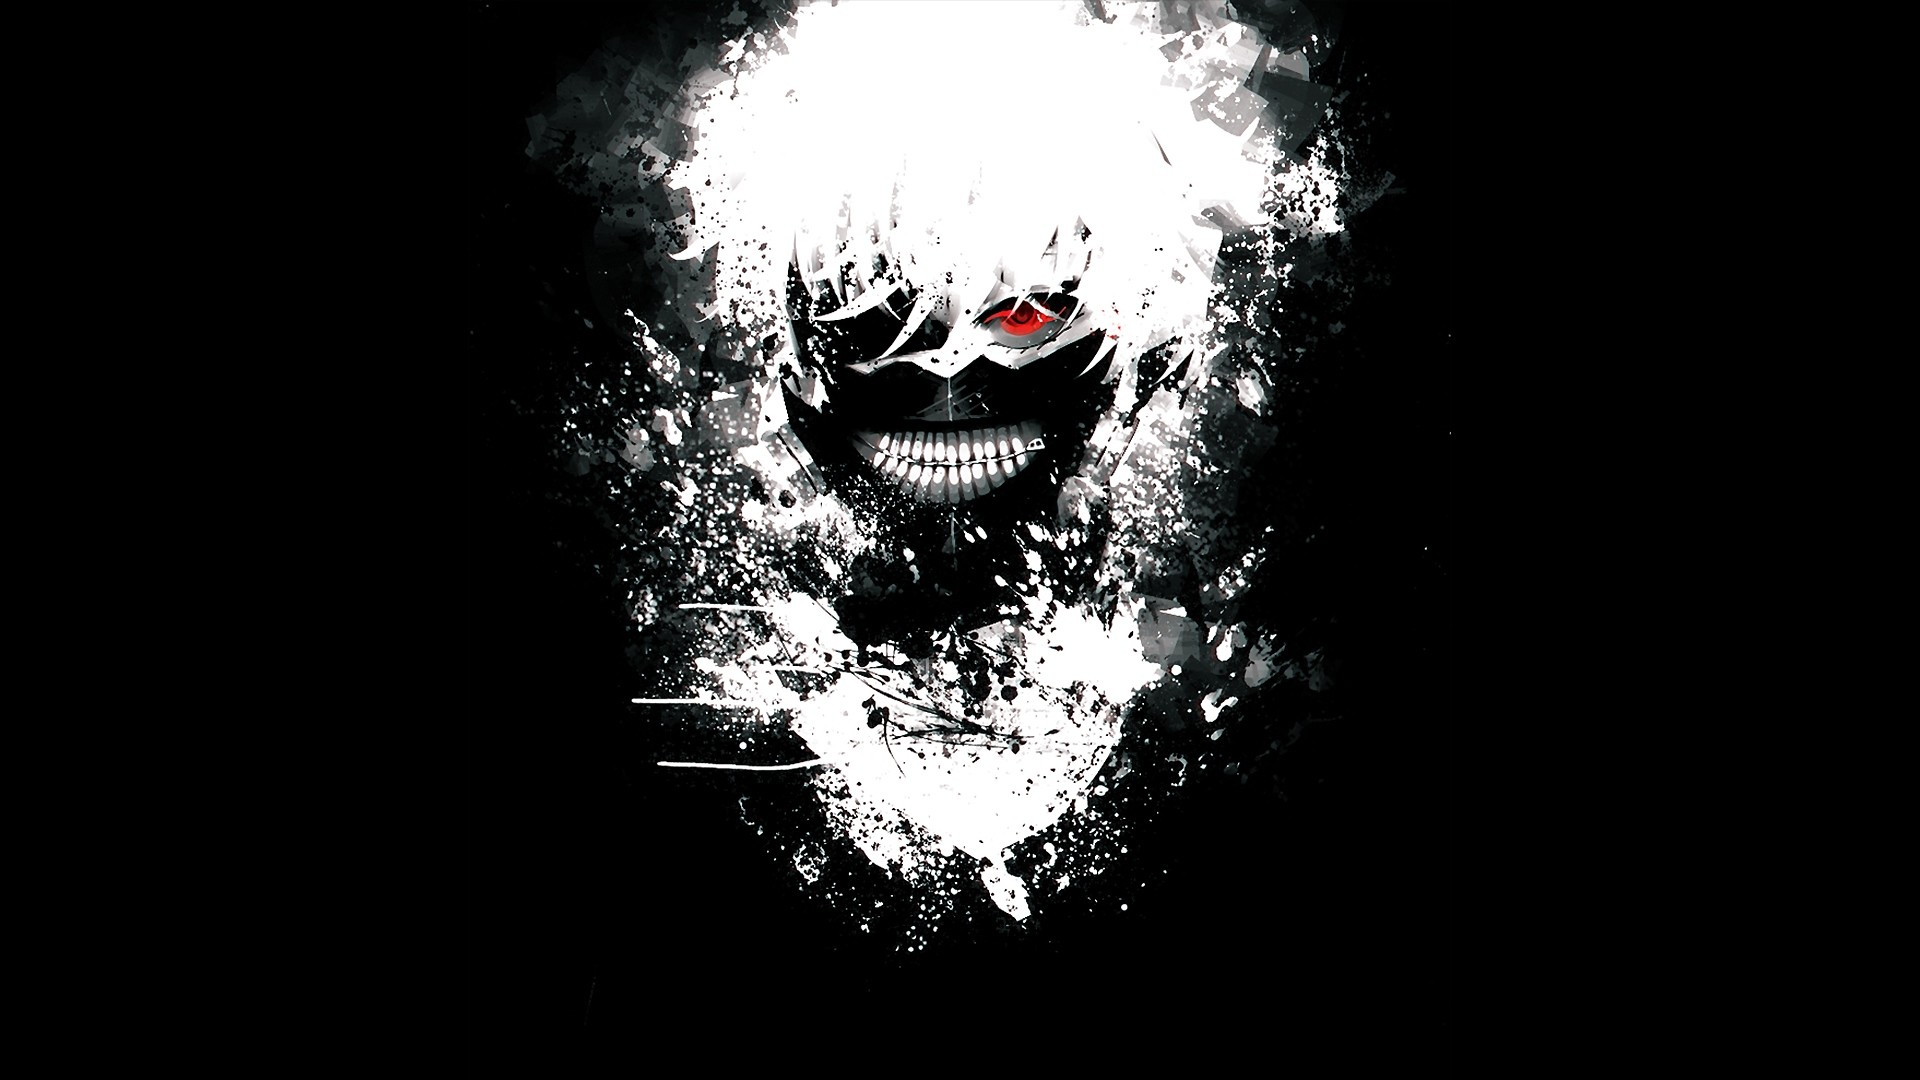 1107x1965 Awesome Dark Anime IPhone Wallpaper Free